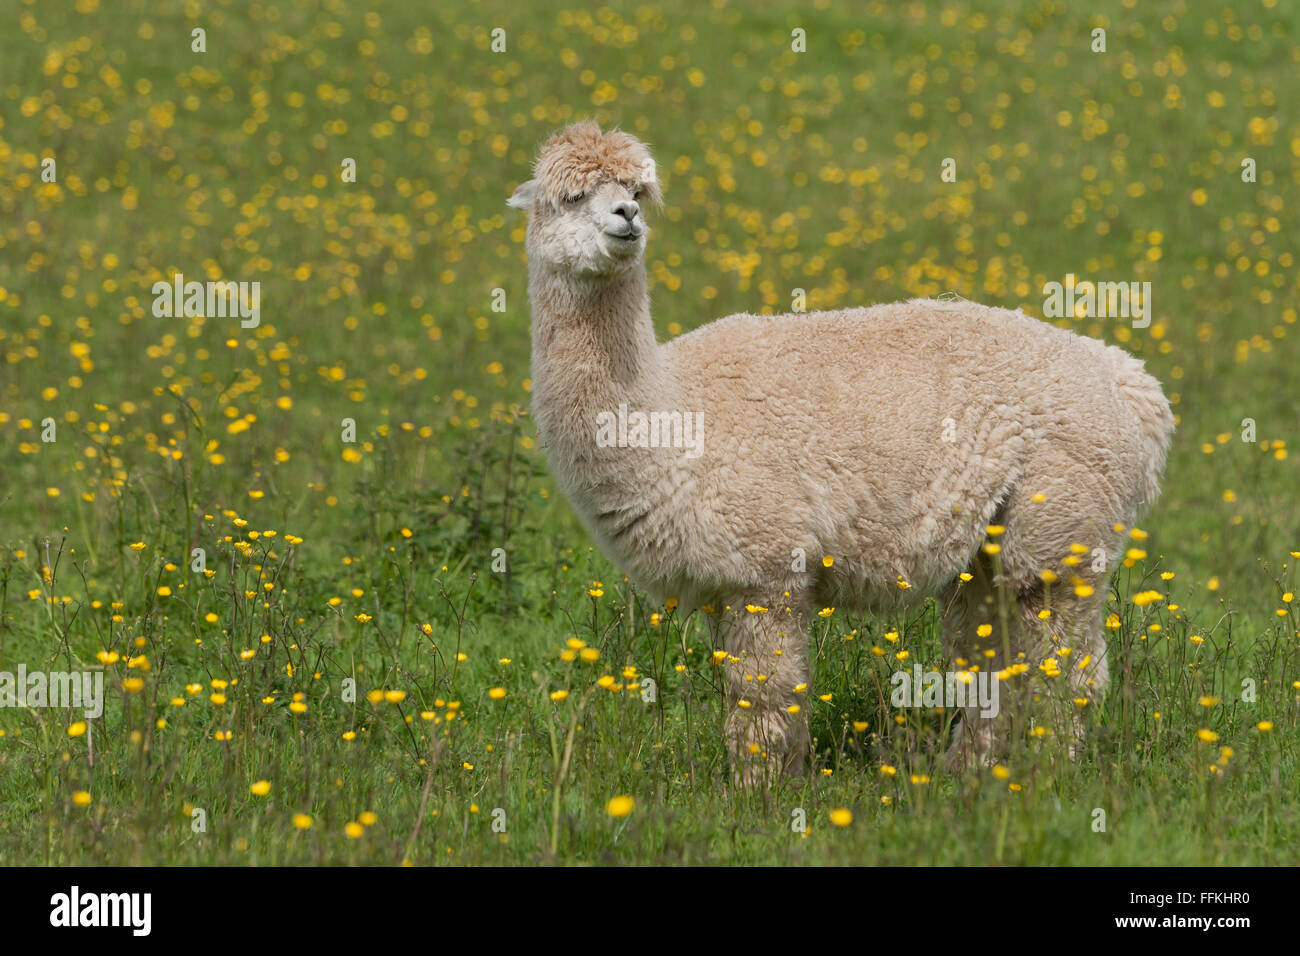 Llama portrait - a larger but related animal to the Alpaca - Stock Image